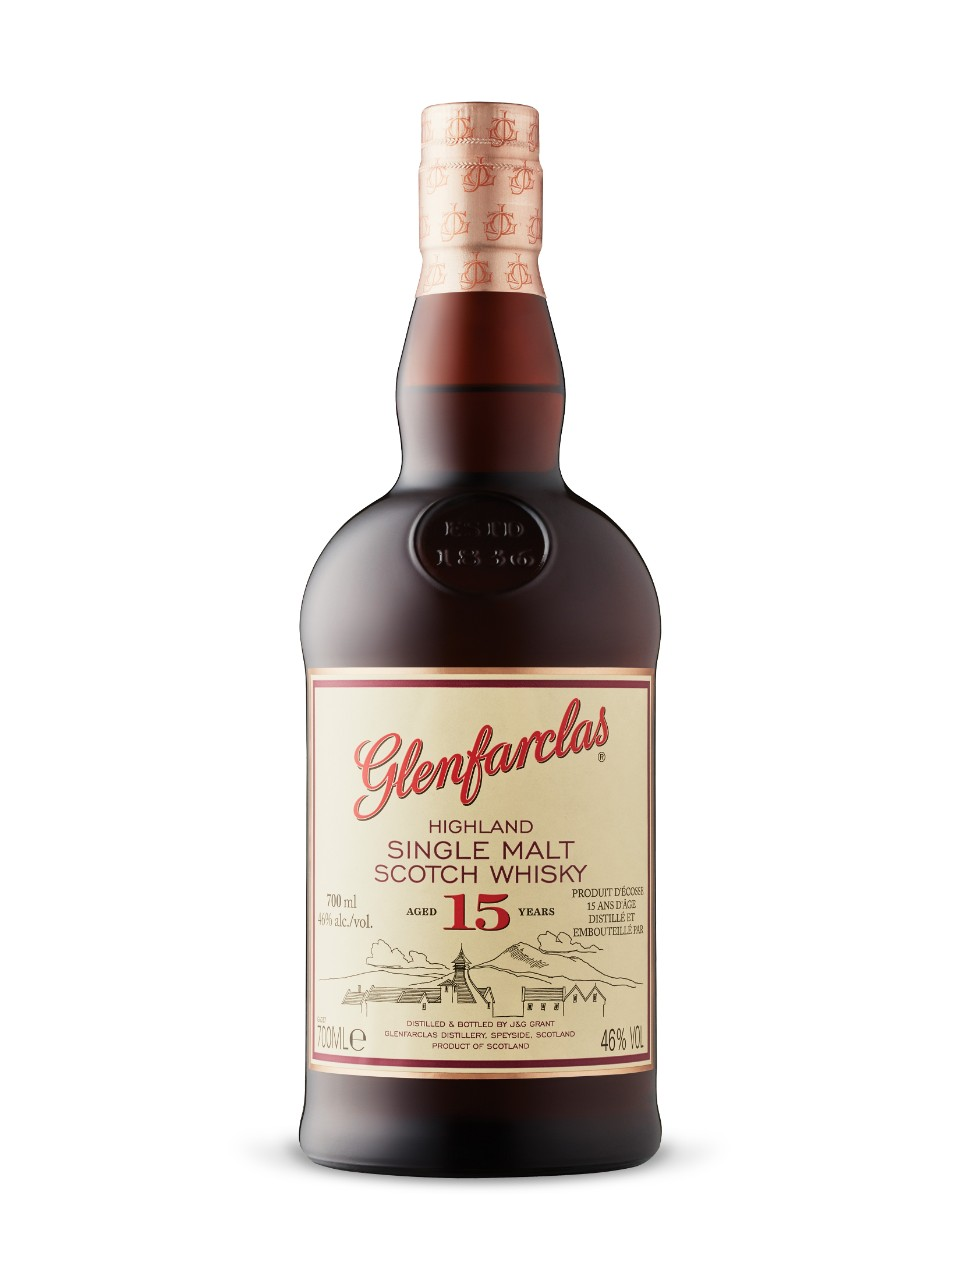 Glenfarclas 15-Year-Old Highland Single Malt Scotch Whisky